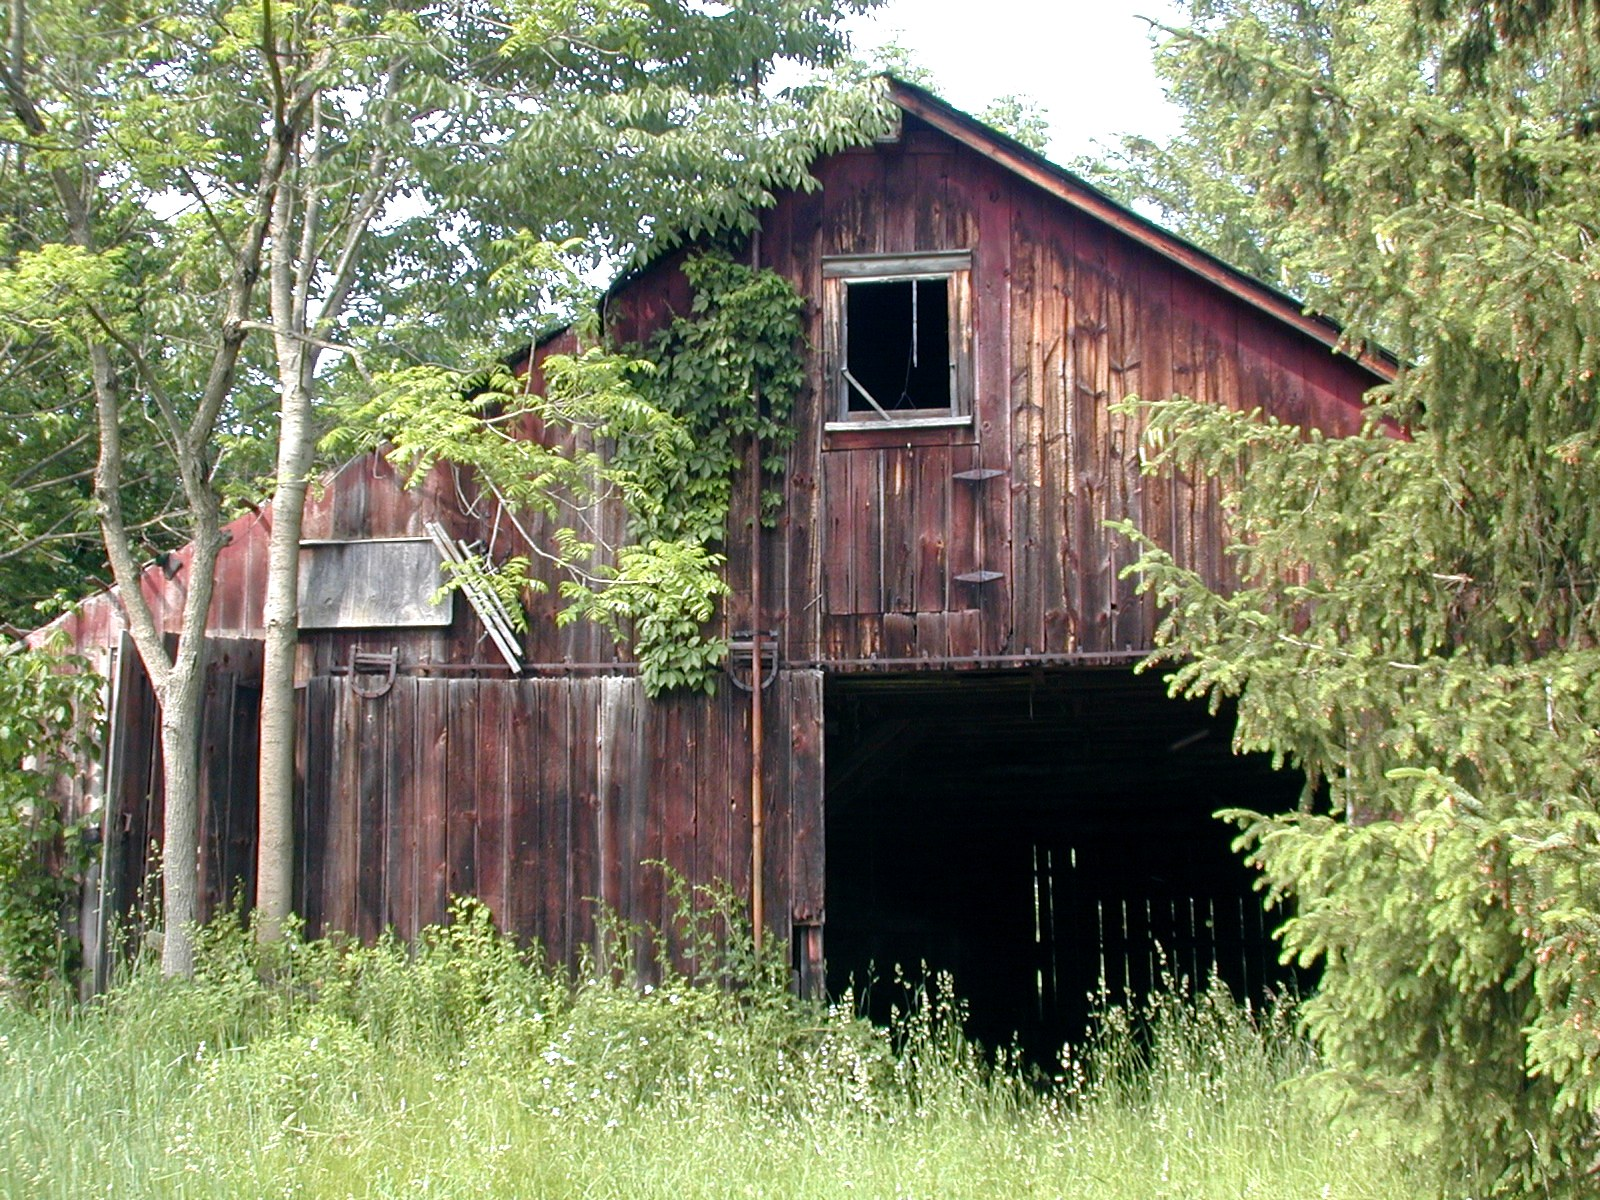 Third unknown house, third barn